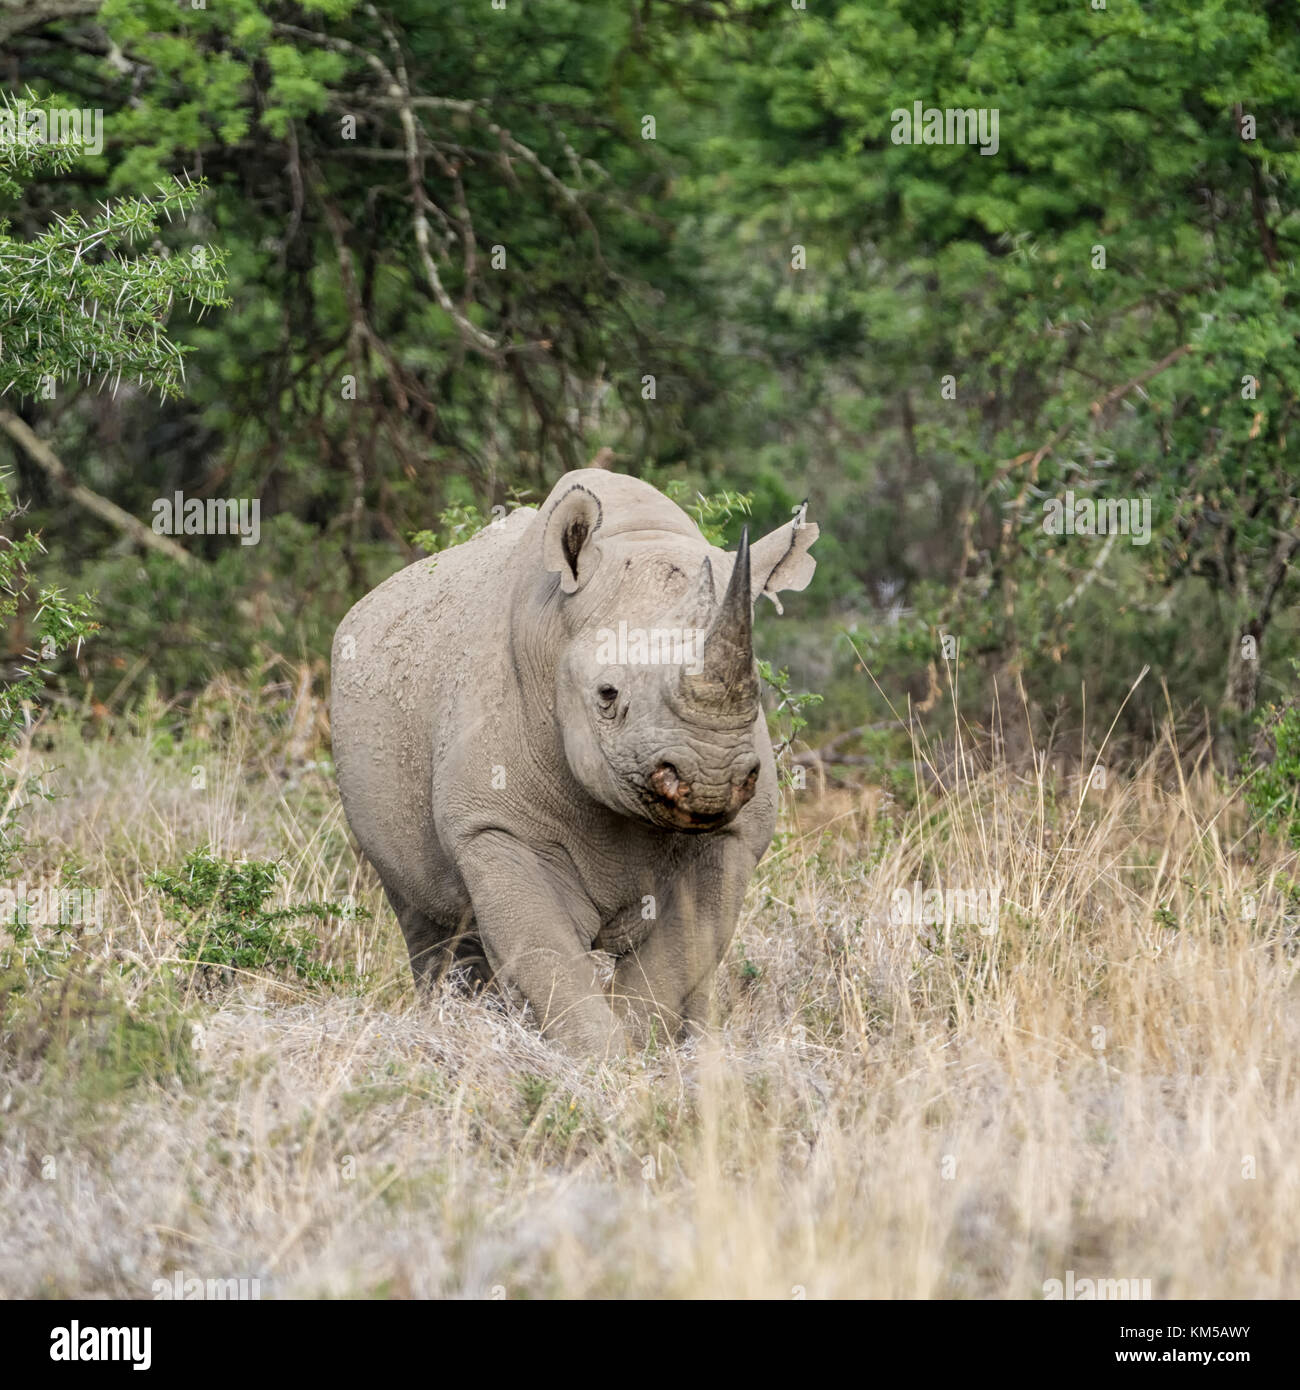 A Black Rhinoceros in Southern African savanna - Stock Image